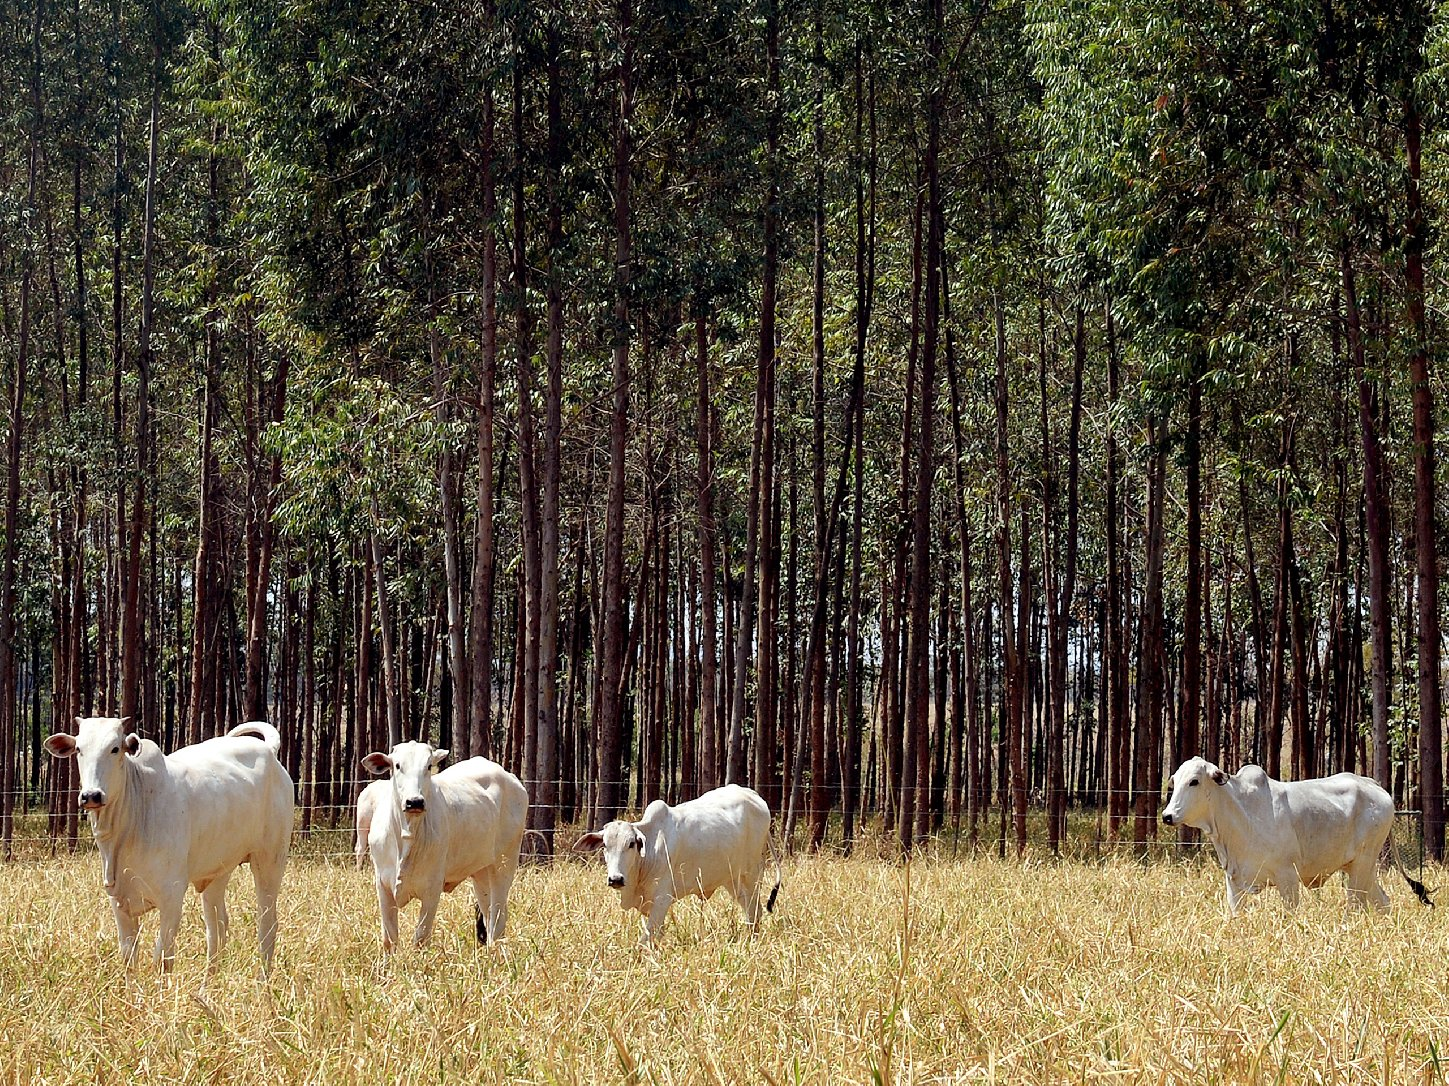 Cattle graze at a Brazilian Agricultural Research experimental farm in Planaltina in Goias state. To reduce emissions from deforestation, the Brazilian government is experimenting with grazing on integrated forest and pasture lands. Photo: Evaristo Sa/AFP/Getty Images